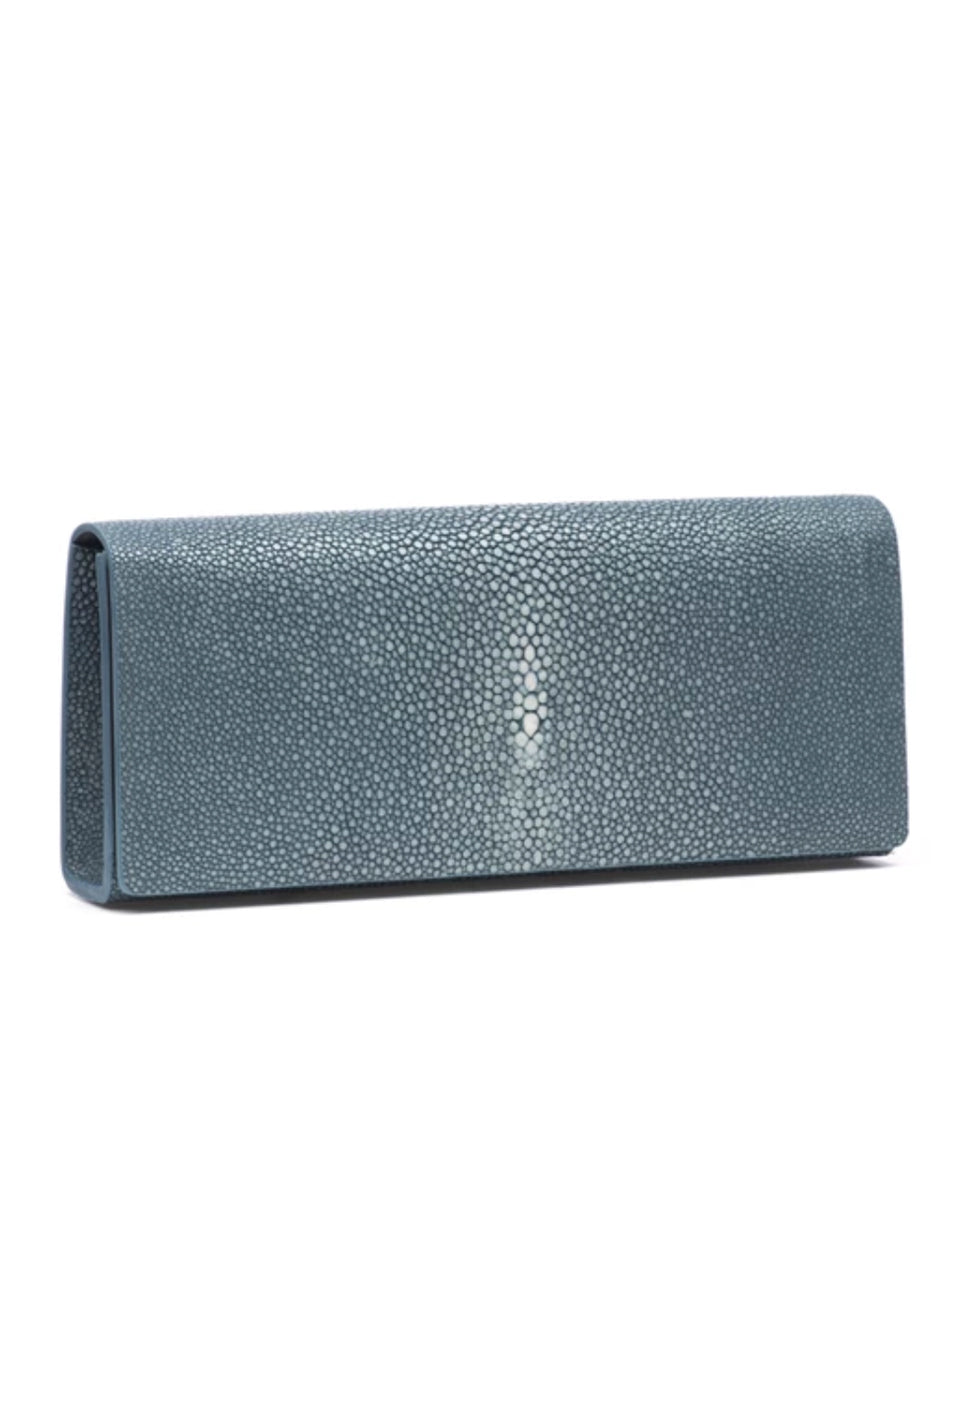 Shagreen Wallet Clutch - Navy